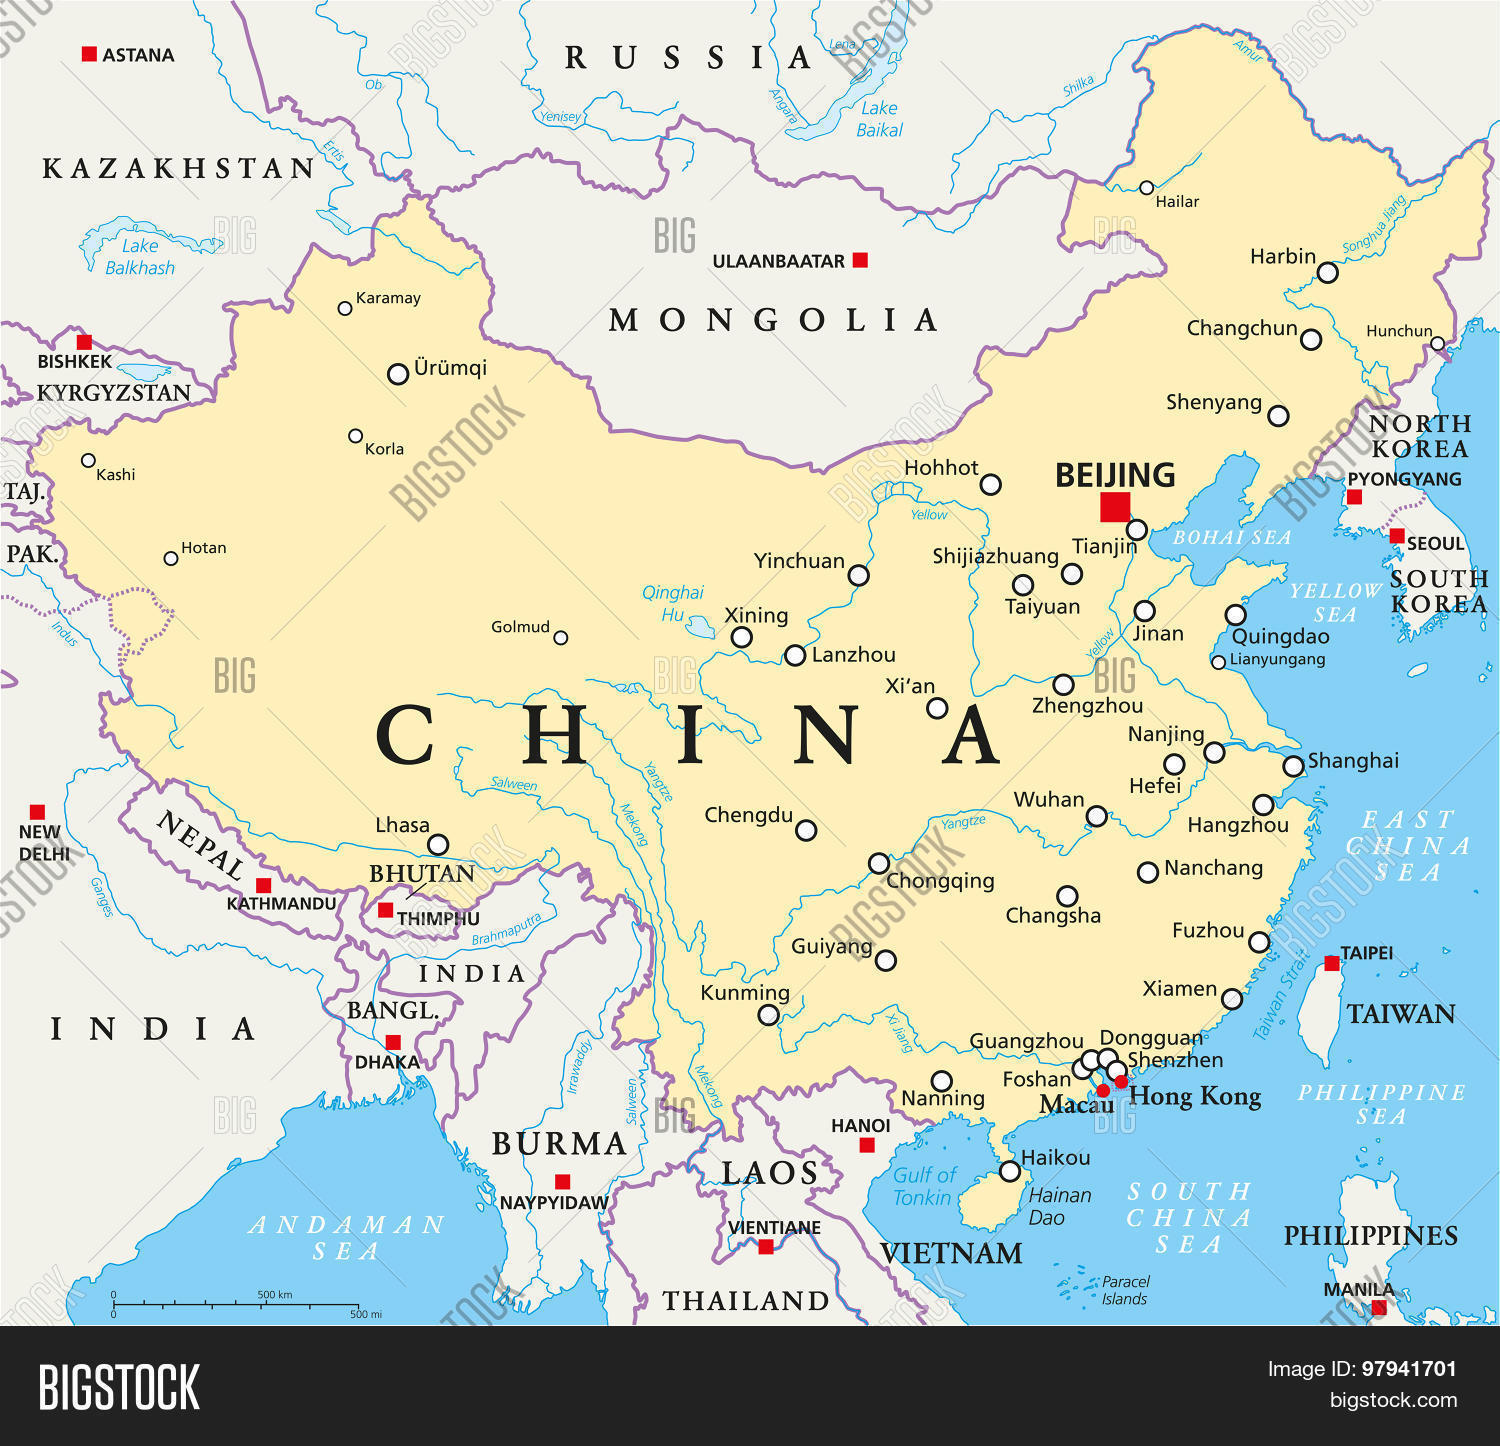 China political map vector photo free trial bigstock china political map gumiabroncs Images